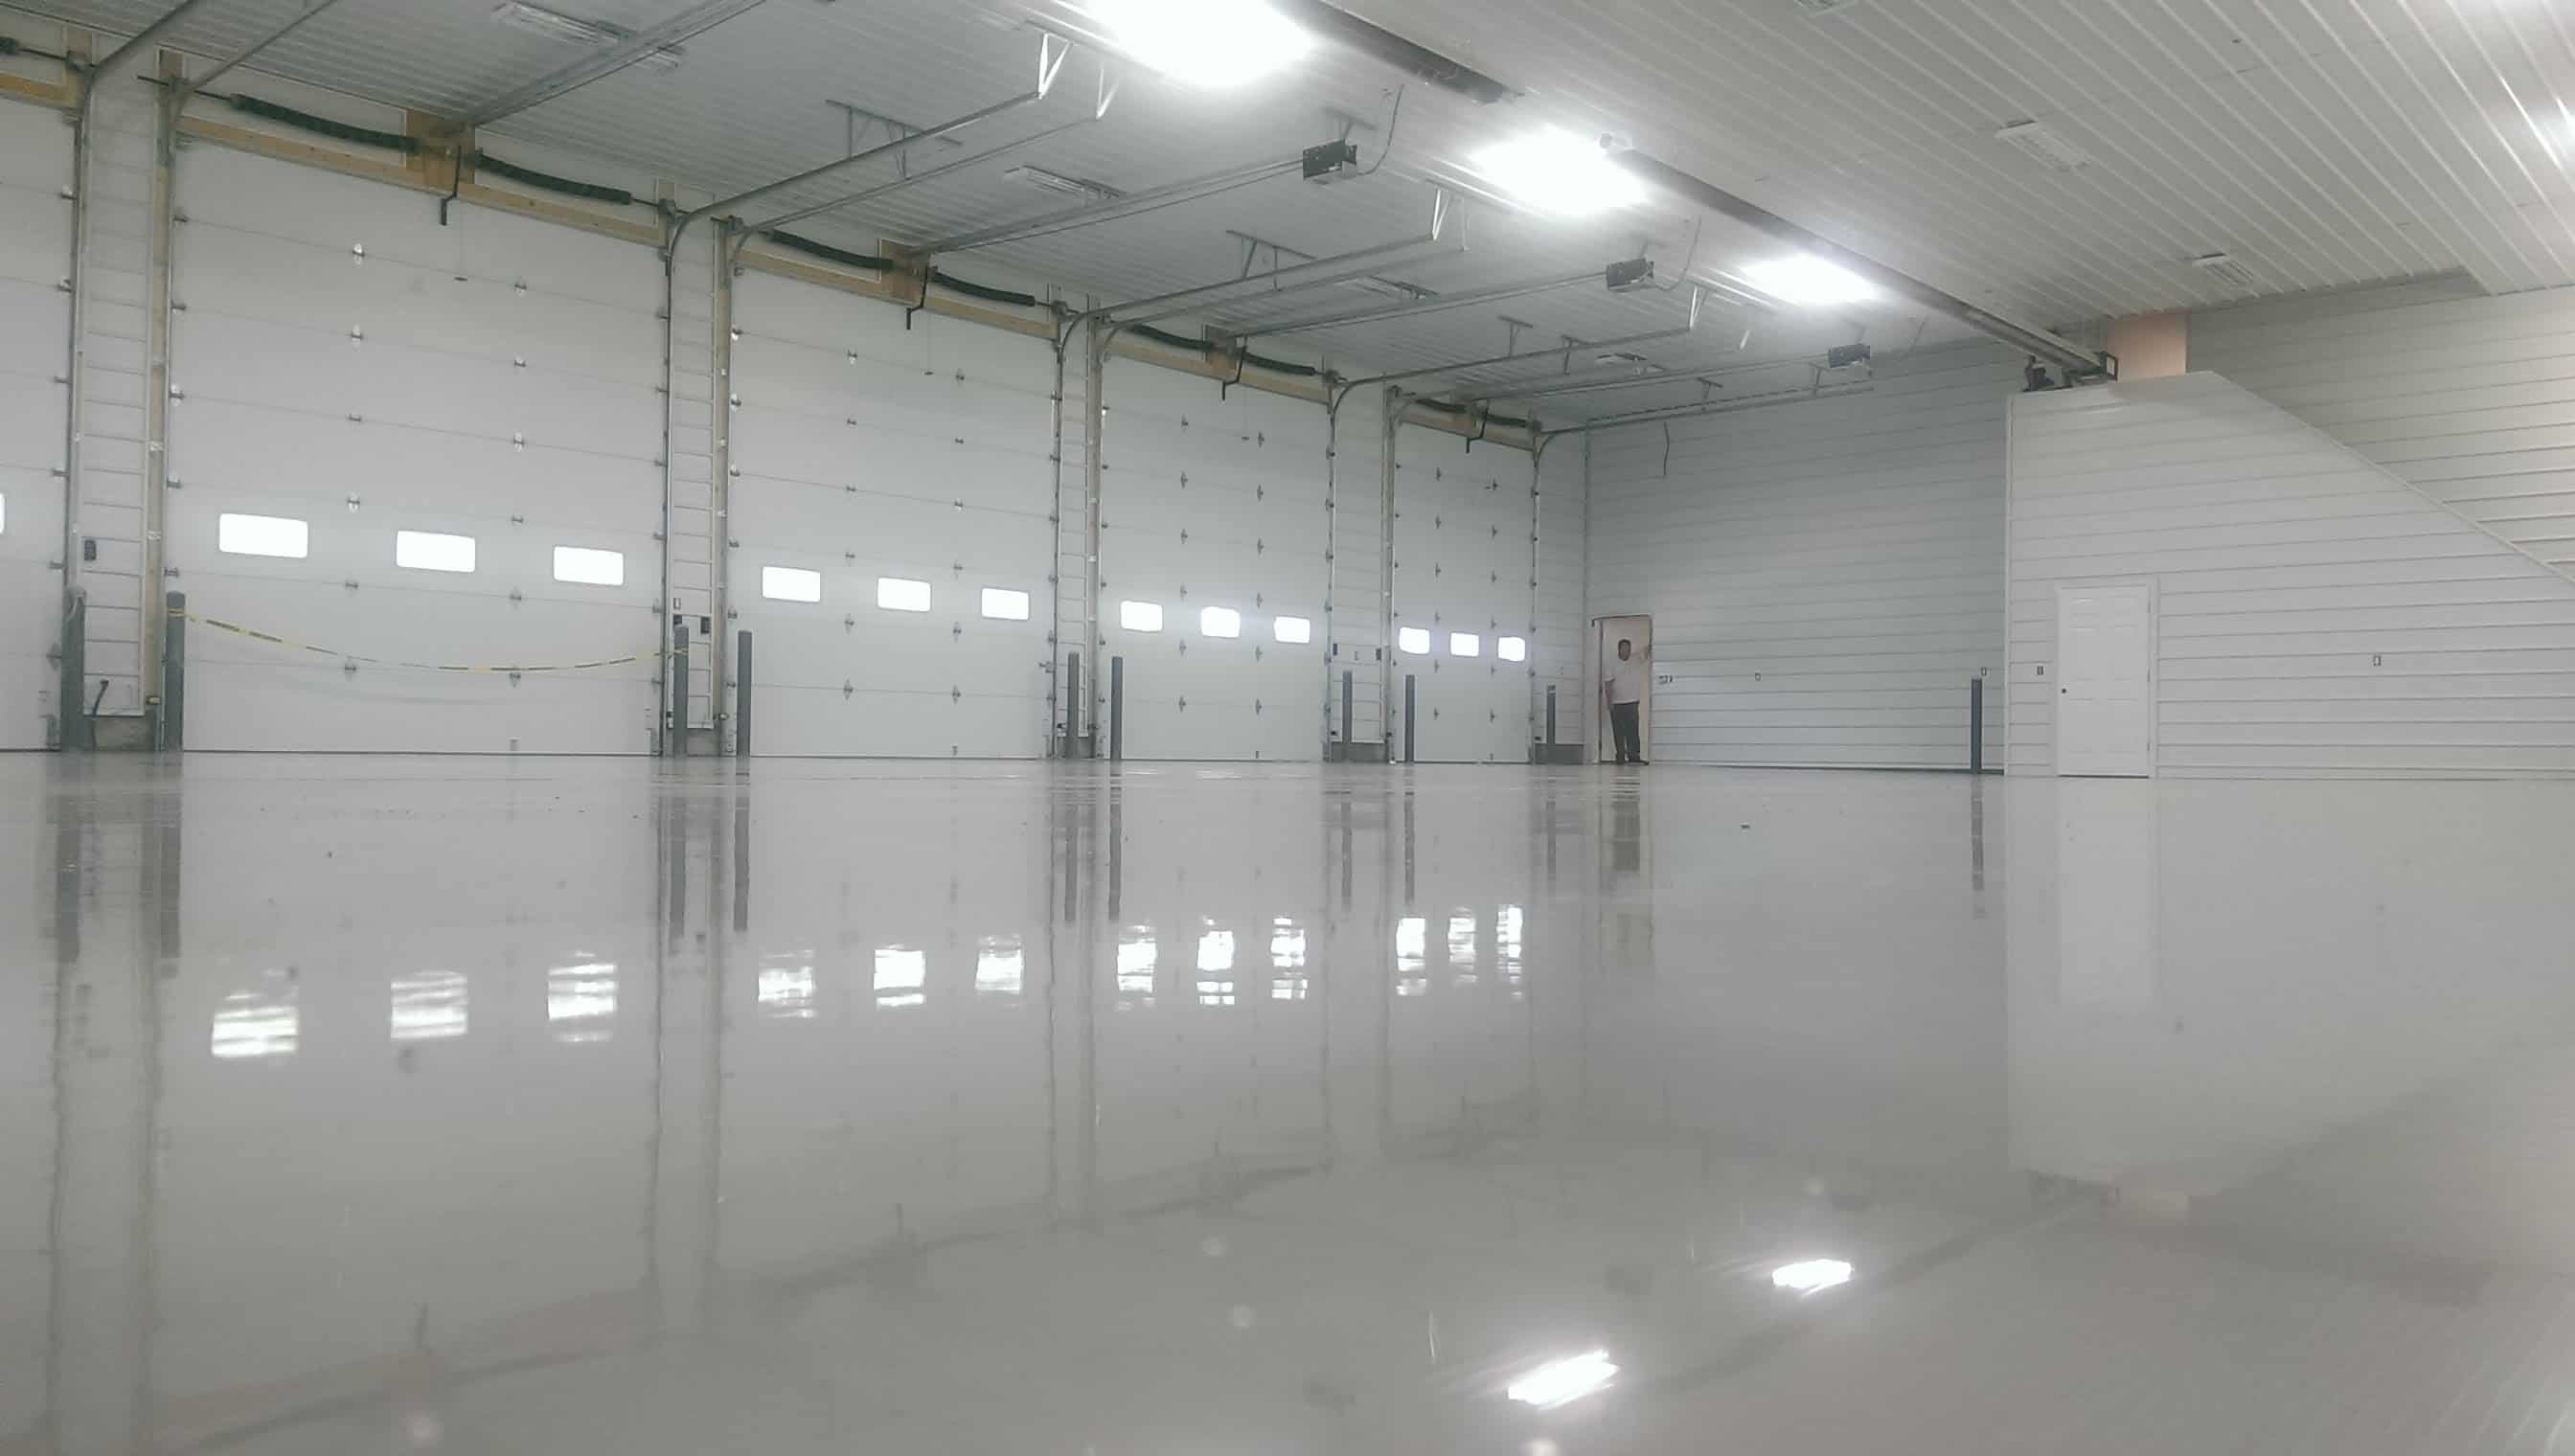 basement service epoxy engineered coating hampshire nh restore my coatings for in homes contrete floor floors new contractor